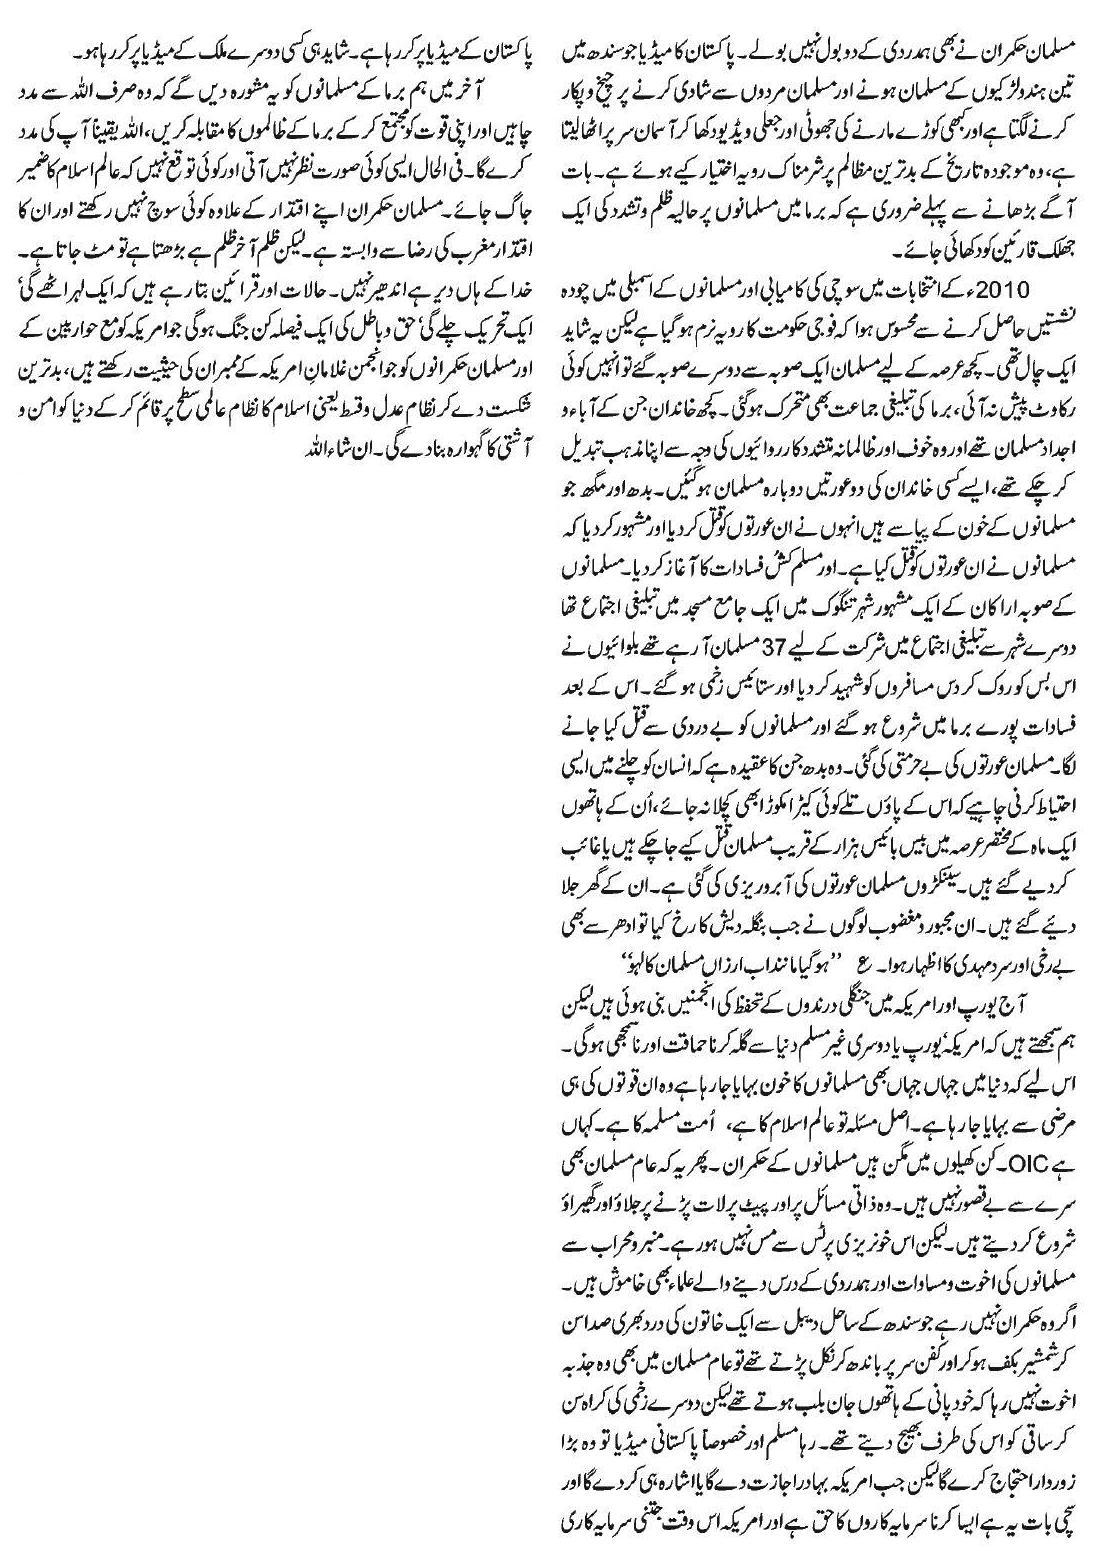 essay on rights of neighbours in urdu The rights of neighbours in islam 1 the rights of eighbours in islam imam/ khalifa ezzat rabi' awwal 30, 1430 – 27-3-2009dear brothers and sisters: islam gives great emphasis on the rights of neighbours andrecommends that a muslim treats their neighbours kindly.